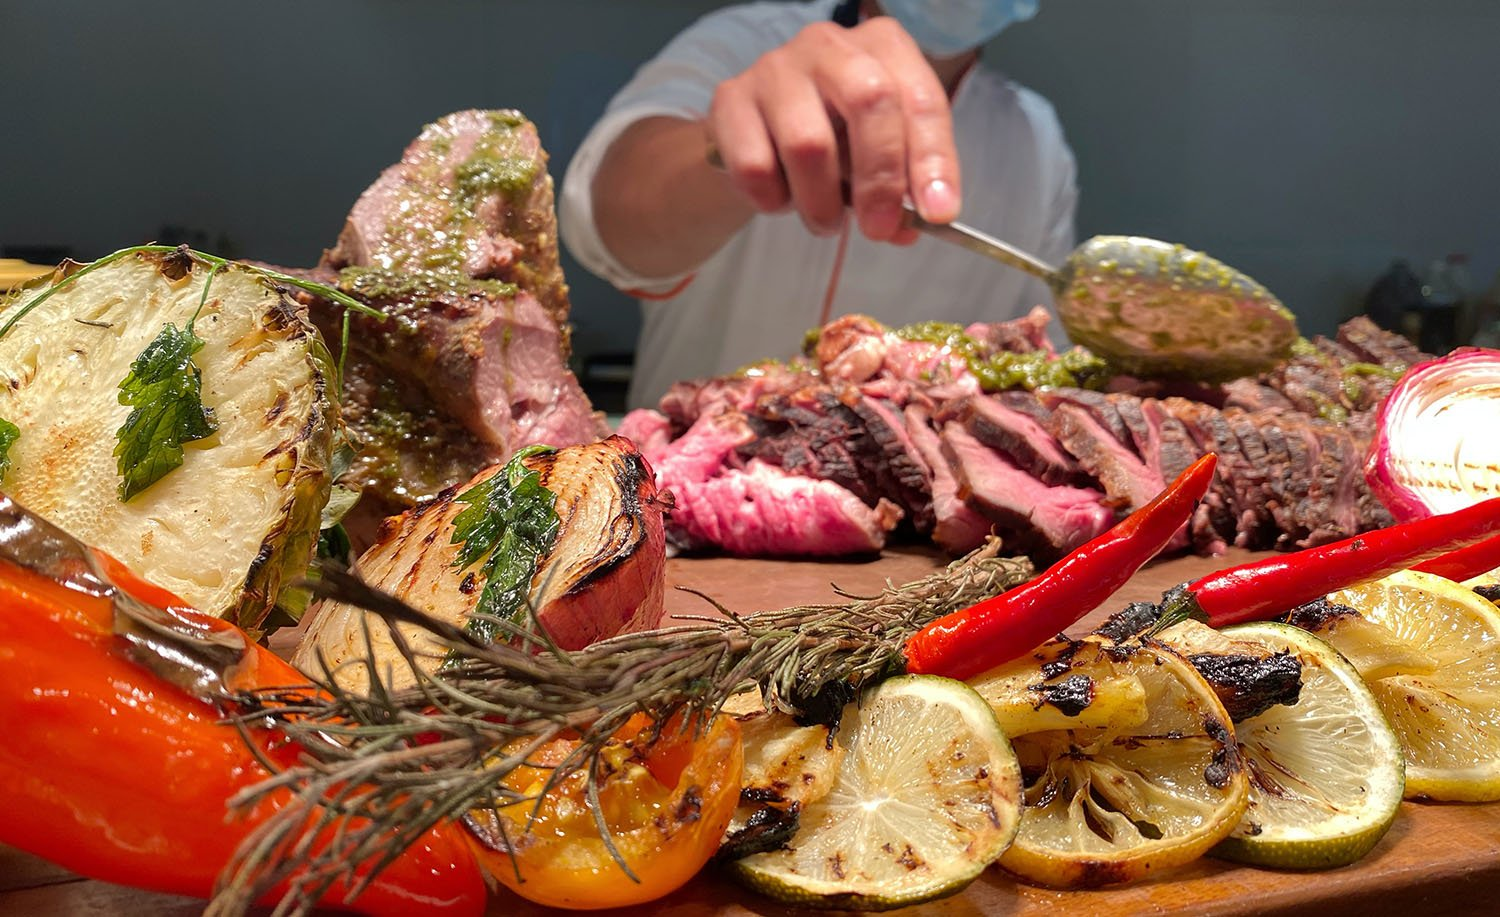 Roast and Salad Buffet at dusitD2's Madayaw Cafe for only P888!